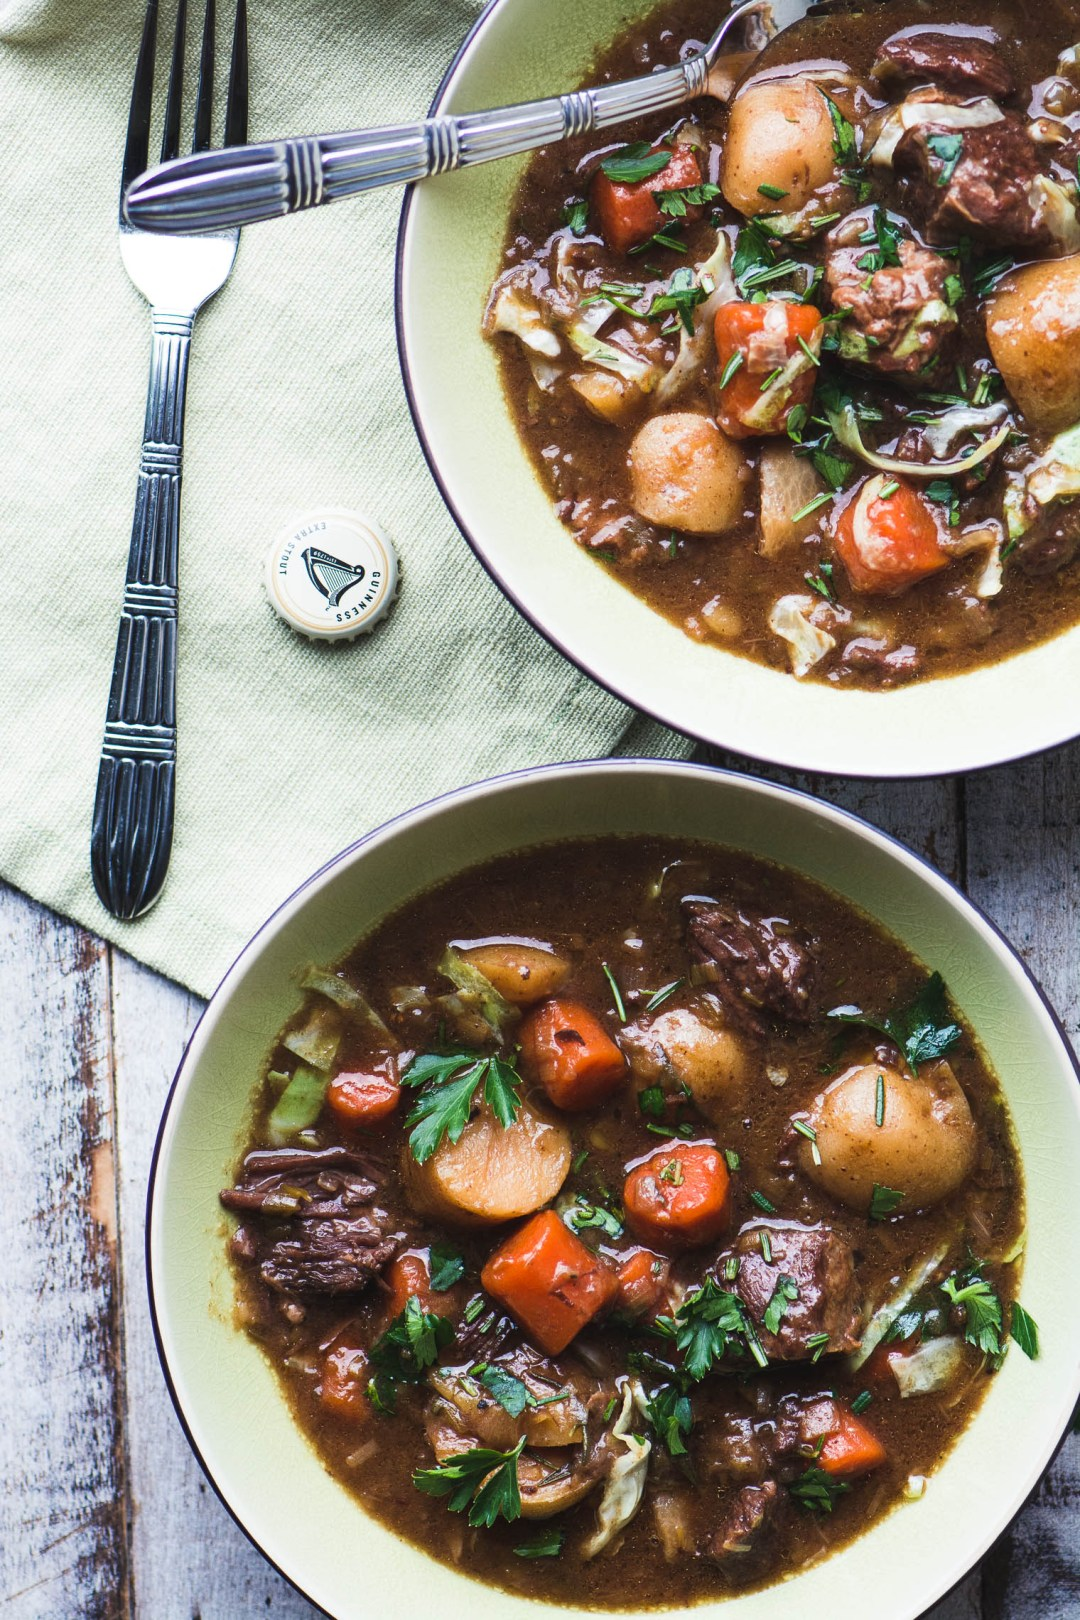 Irish stew made in the instant pot